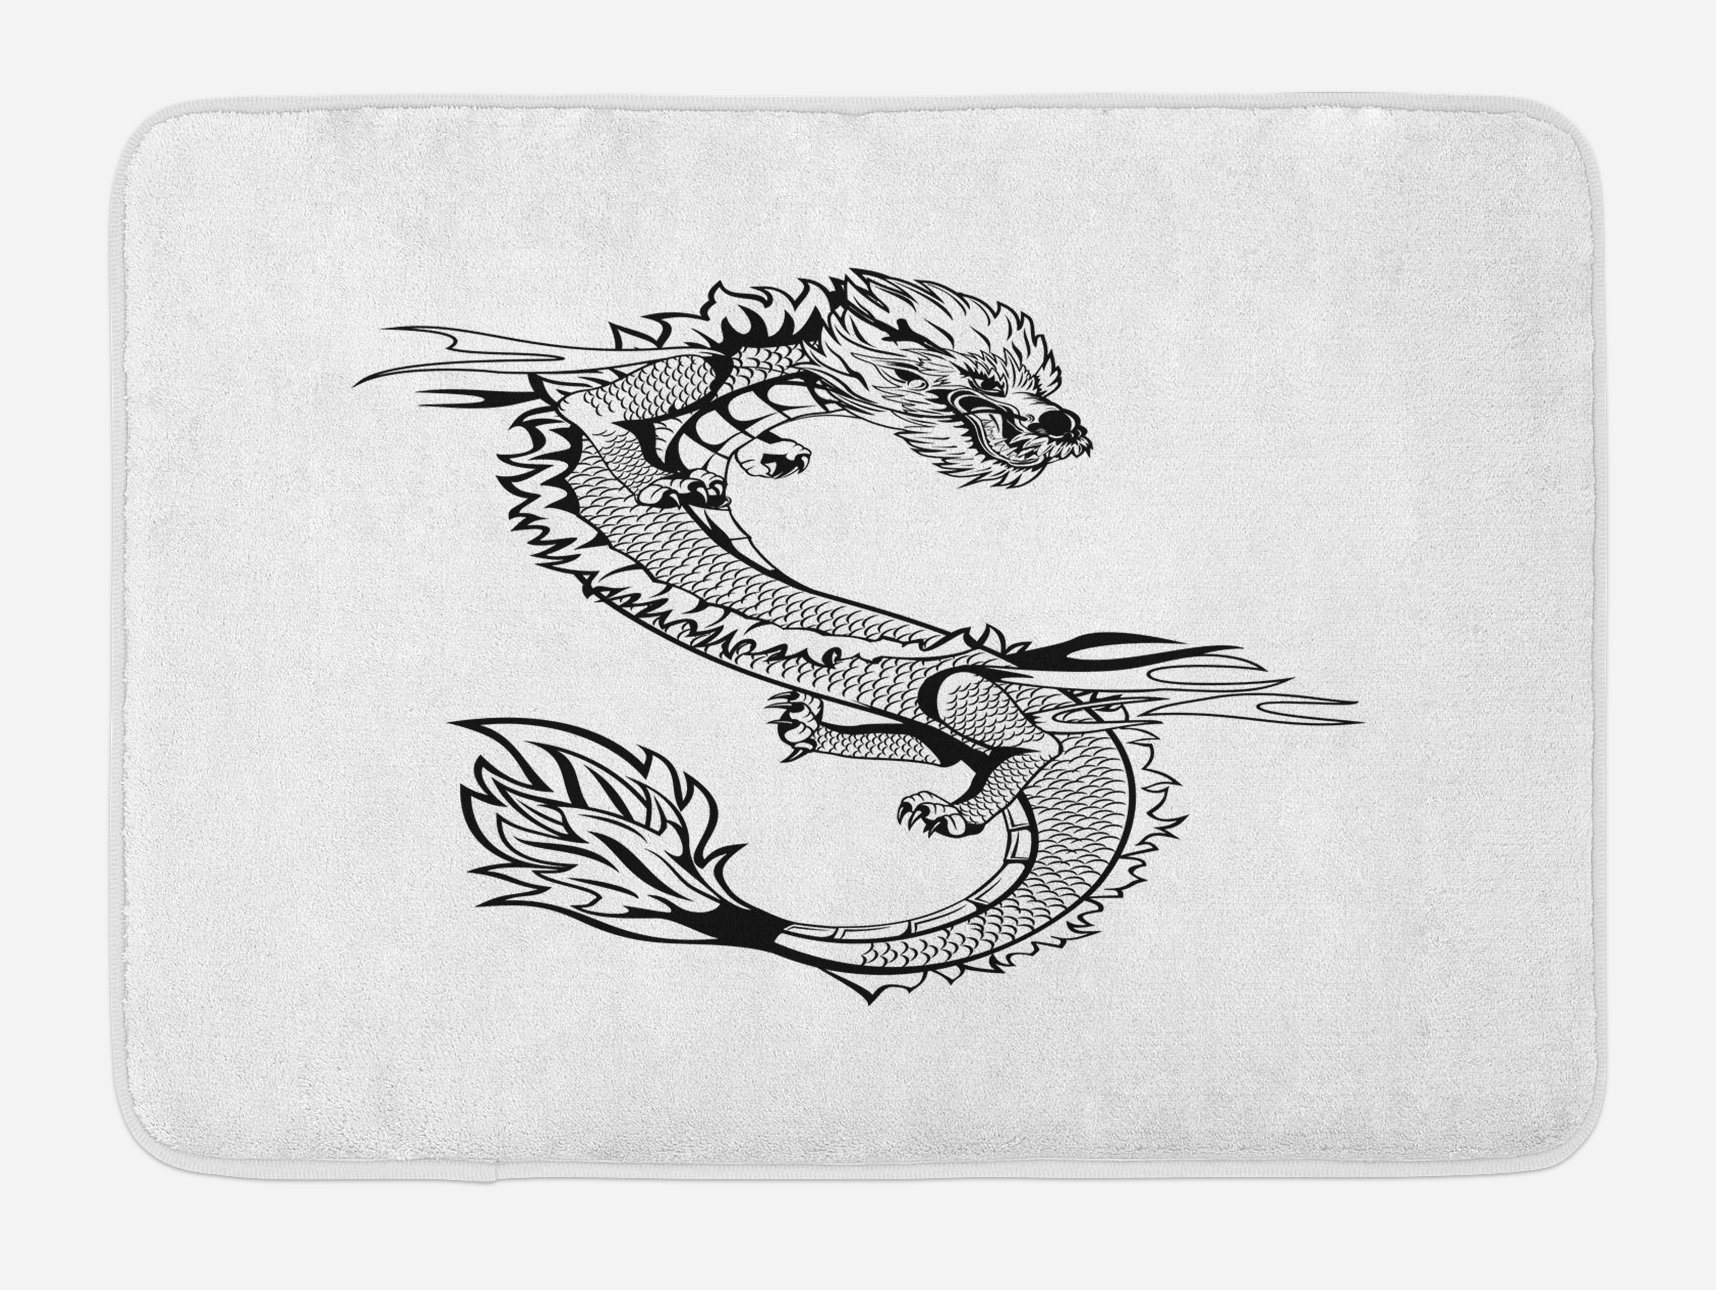 Ambesonne Japanese Dragon Bath Mat, Ancient Far Eastern Culture Esoteric Magical Monster Symbolic Thai Style, Plush Bathroom Decor Mat with Non Slip Backing, 29.5 W X 17.5 W Inches, Black White by Ambesonne